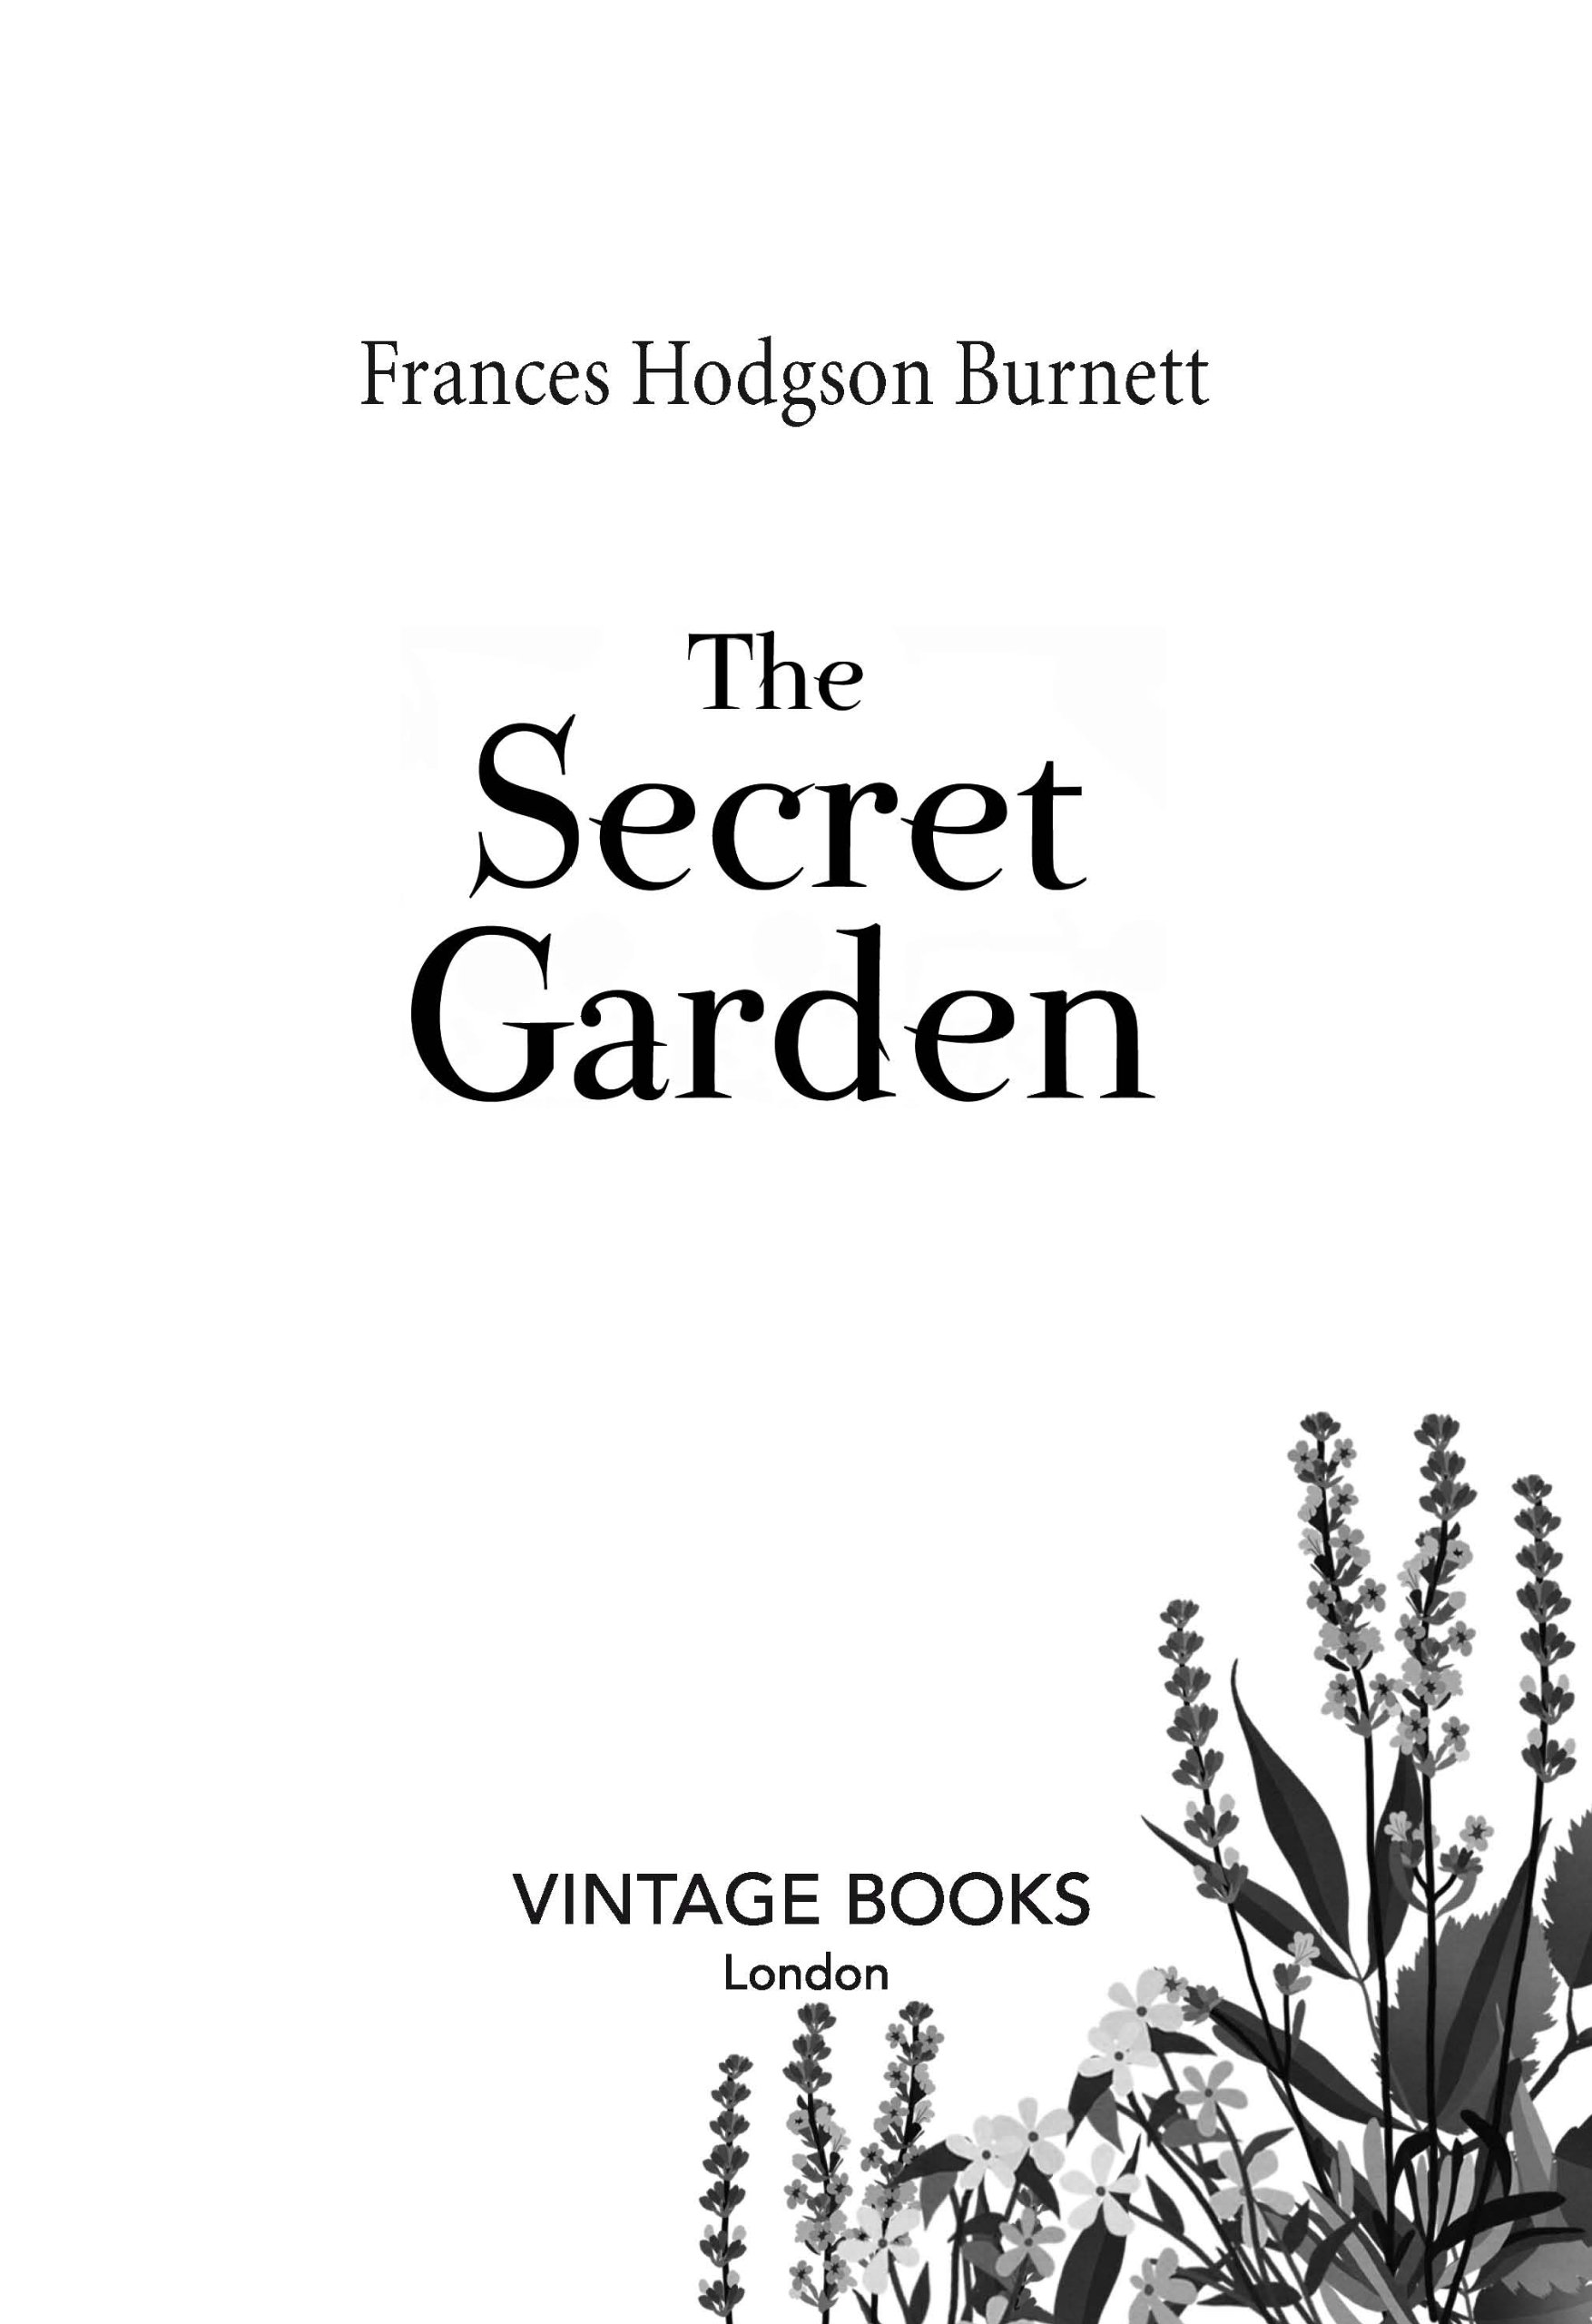 The Secret Garden (Vintage Childrens Classics): Amazon.es: Frances Hodgson Burnett: Libros en idiomas extranjeros